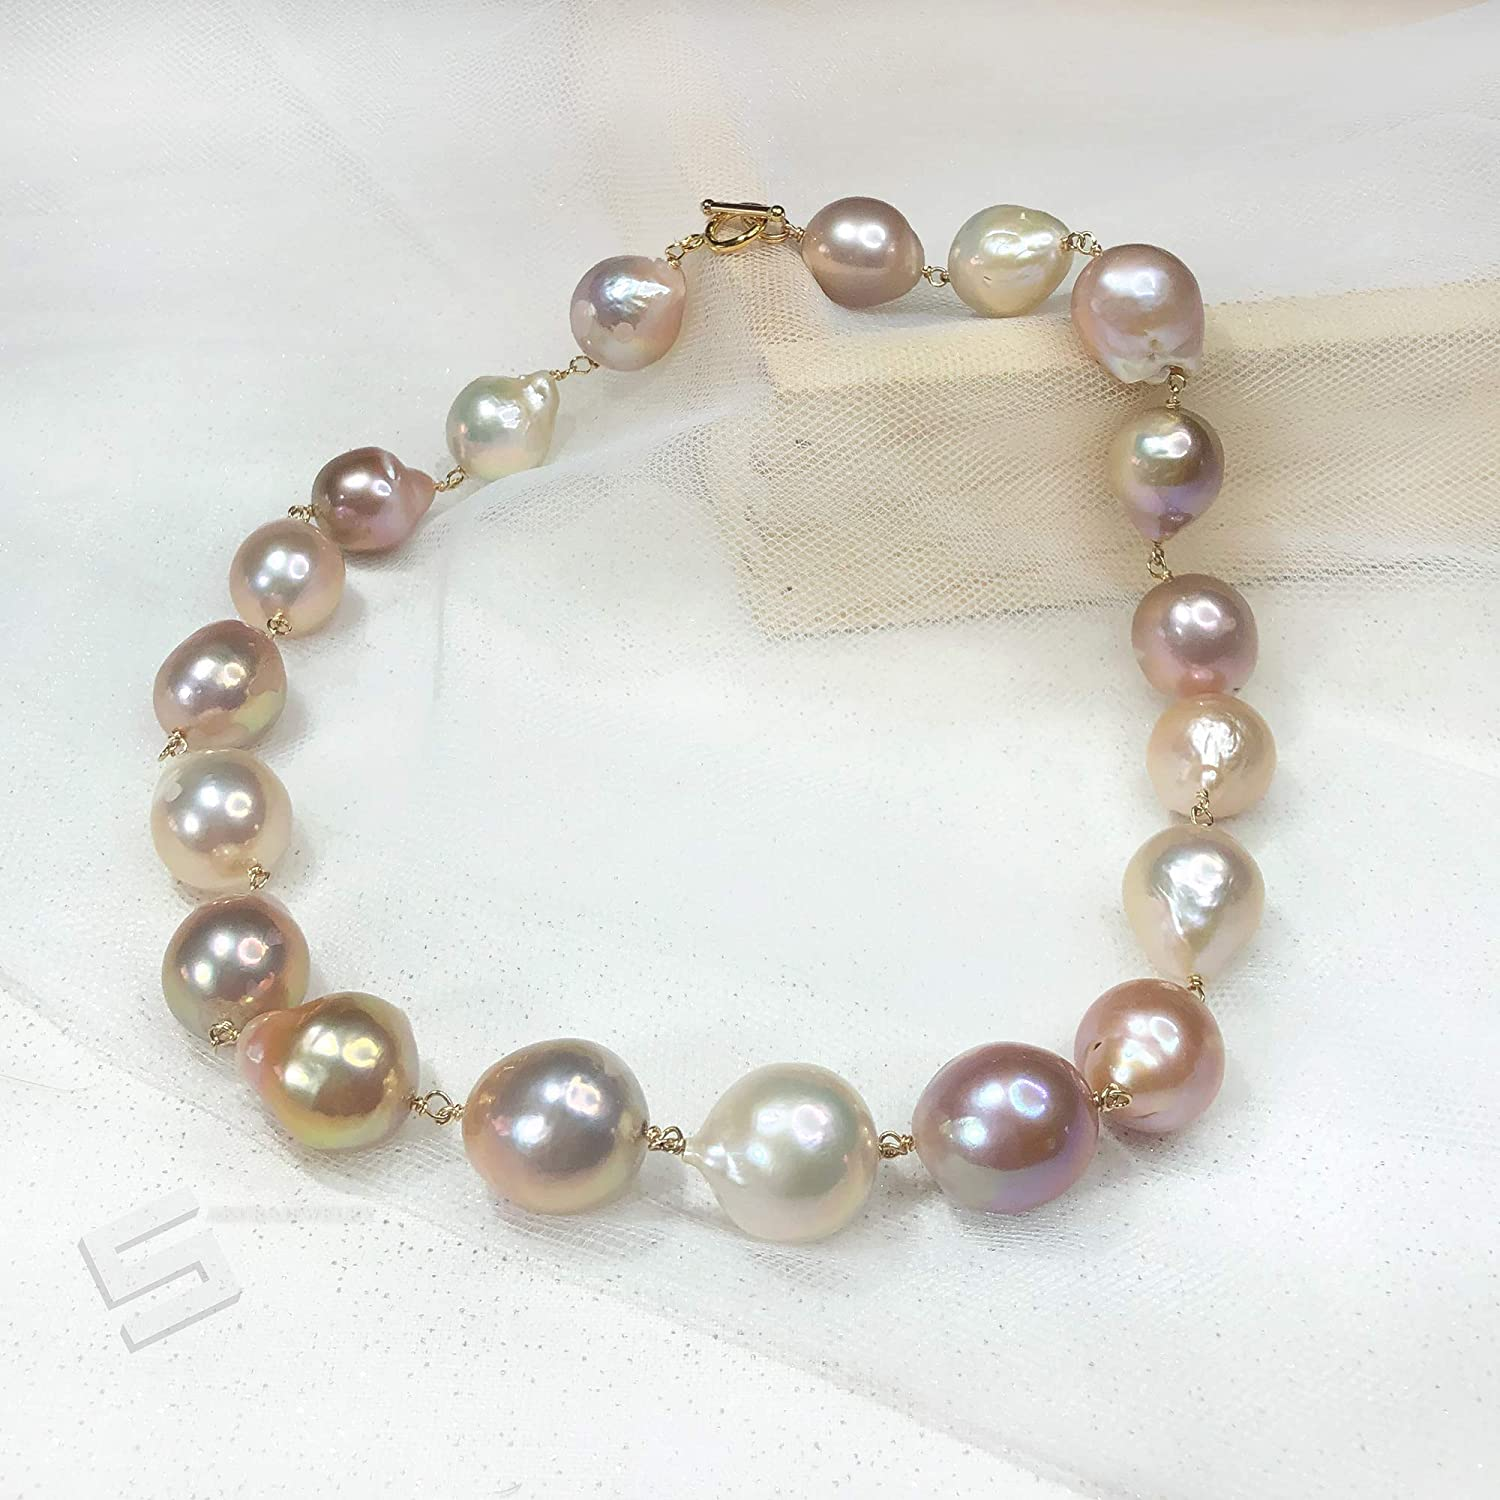 Amazon Com Large Edison Baroque Pearls Necklace 16 22mm Natural